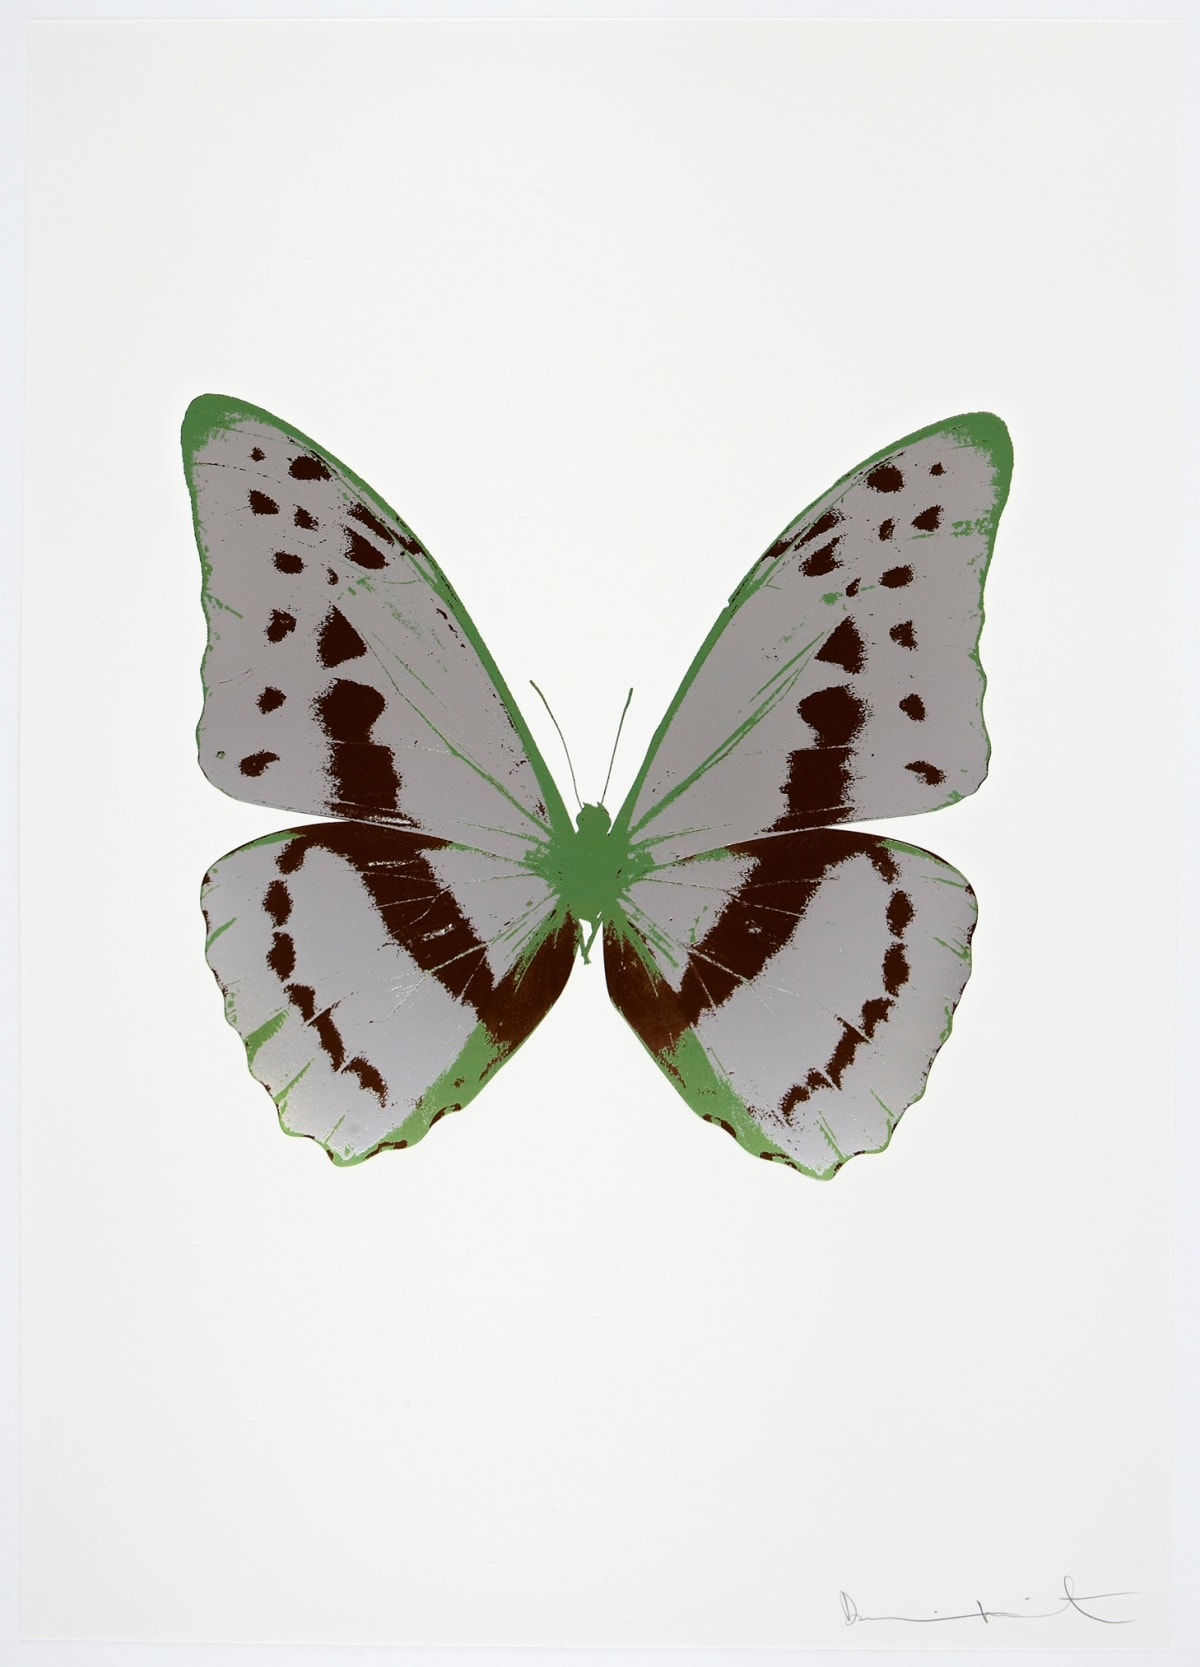 Damien Hirst The Souls III - Sliver Gloss/Chocolate/Leaf Green, 2010 3 colour foil block on 300gsm Arches 88 archival paper. Signed and numbered. Published by Paul Stolper and Other Criteria 72 x 51cm OC7948 / 660-51 Edition of 15